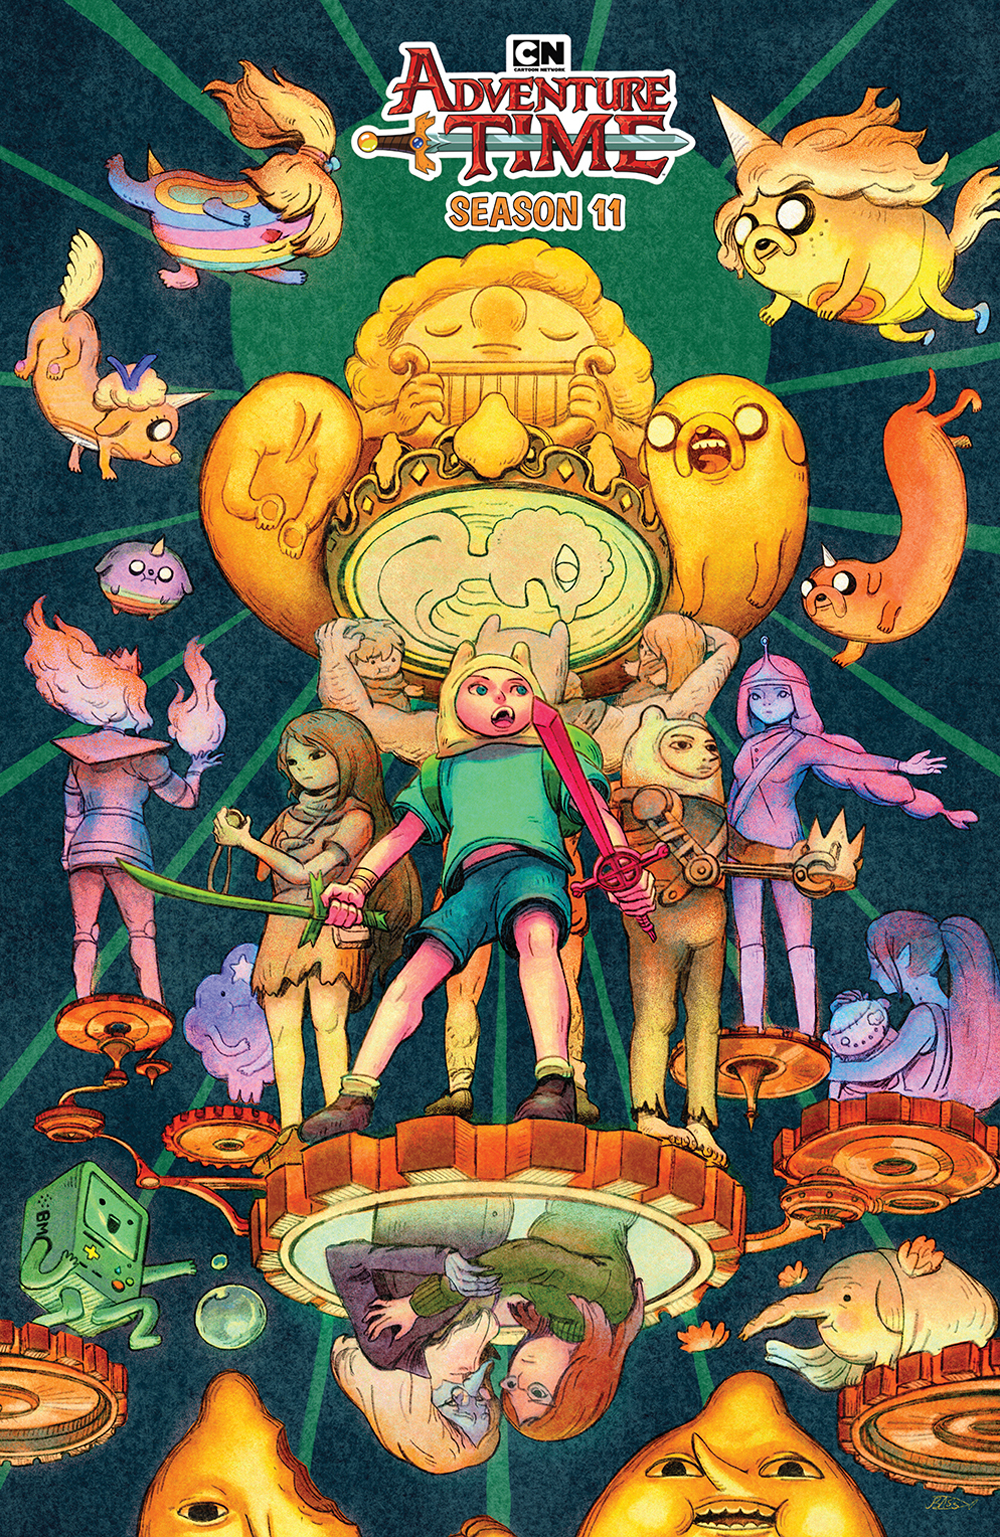 ADVENTURE TIME SEASON 11 #5 PREORDER BENBASSAT